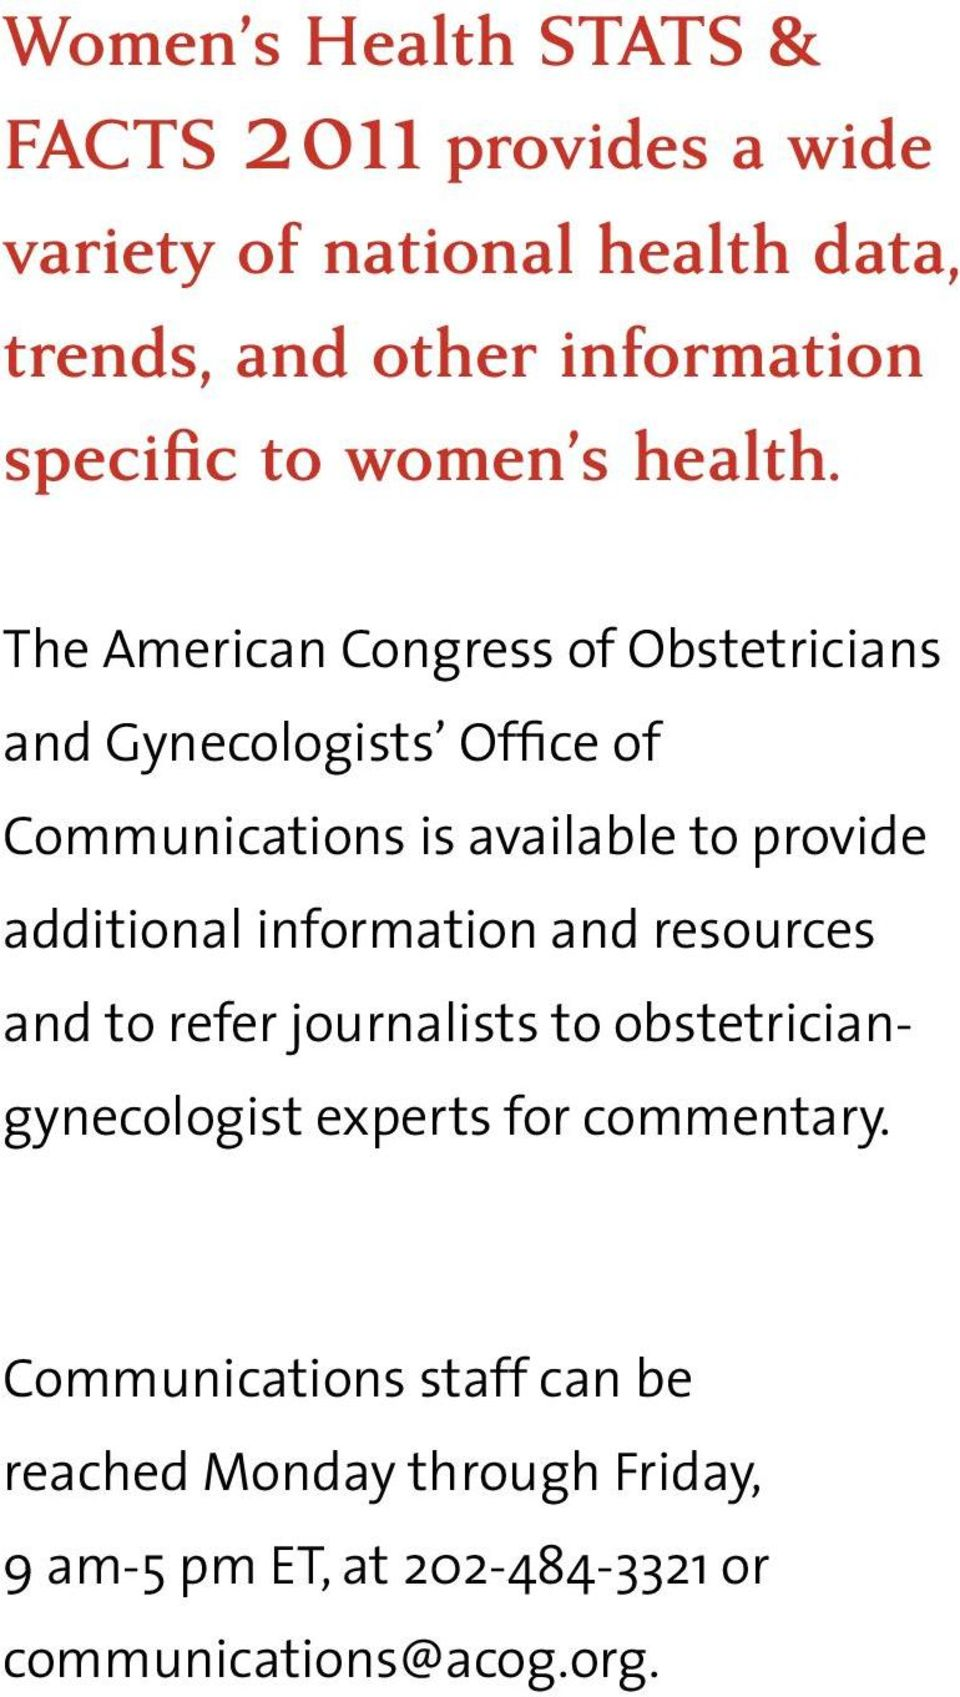 The American Congress of Obstetricians and Gynecologists Office of Communications is available to provide additional